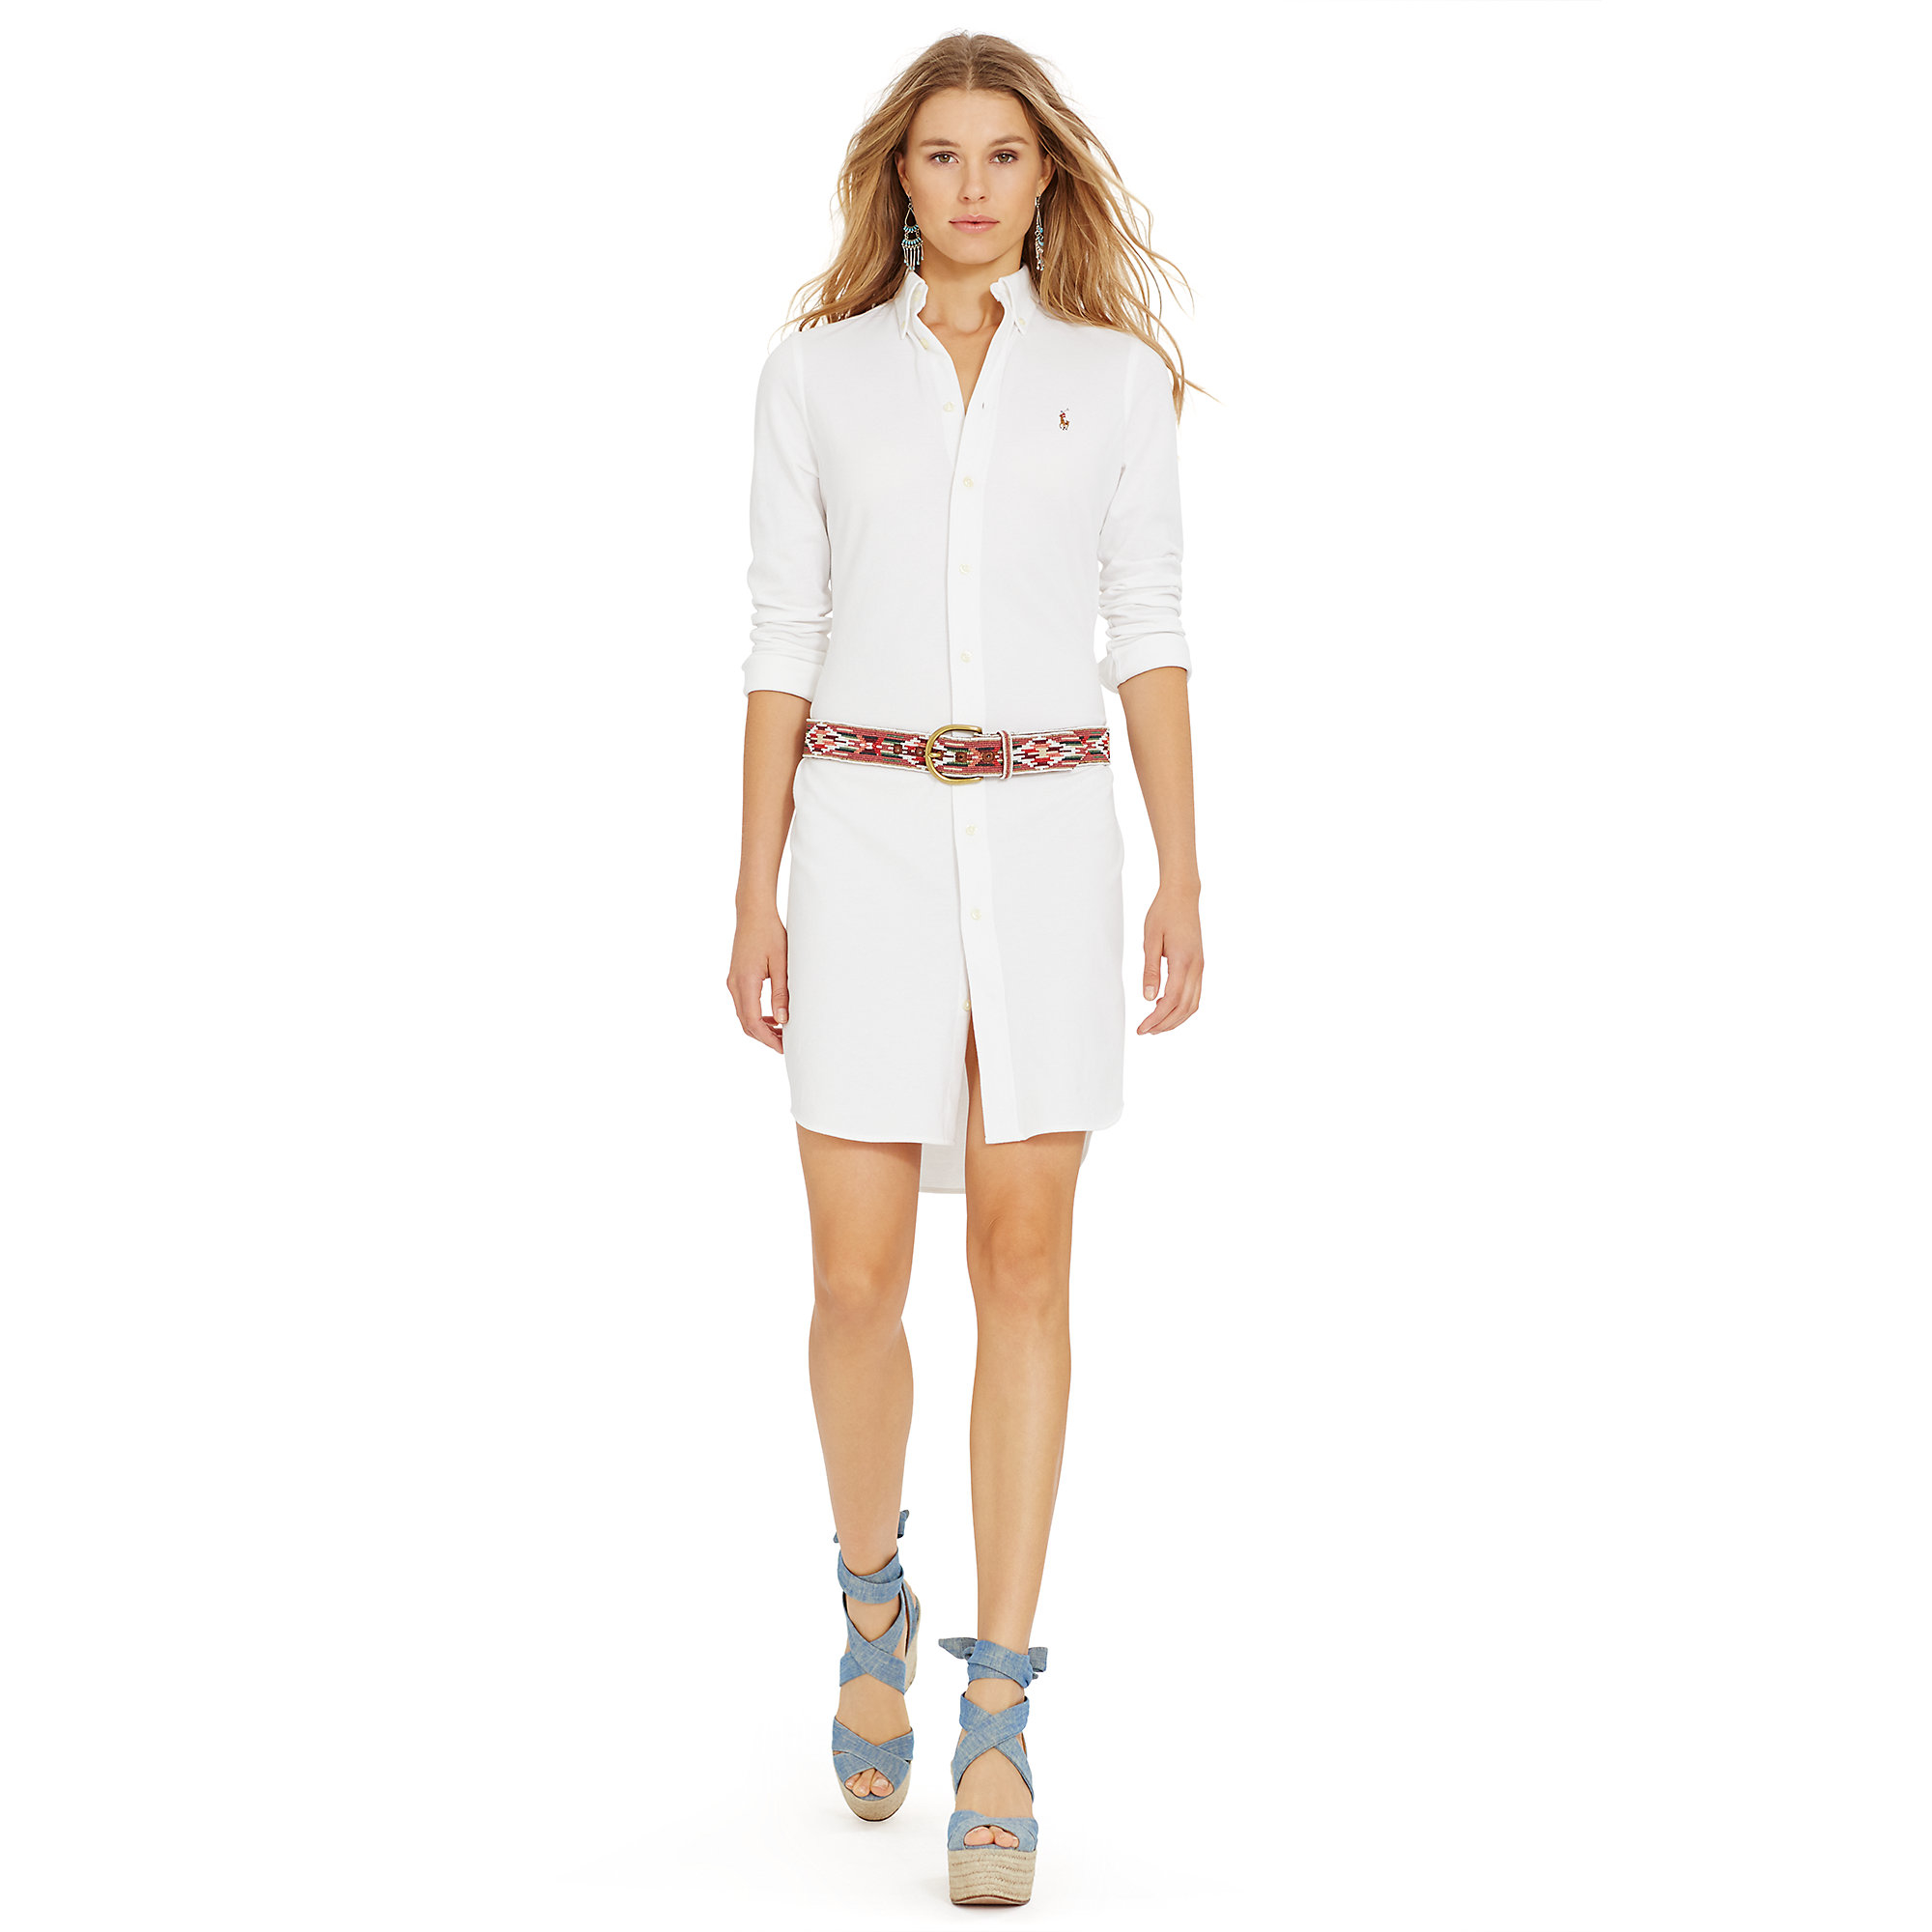 ralph lauren t-shirt dresses ralph lauren polo shirt sales